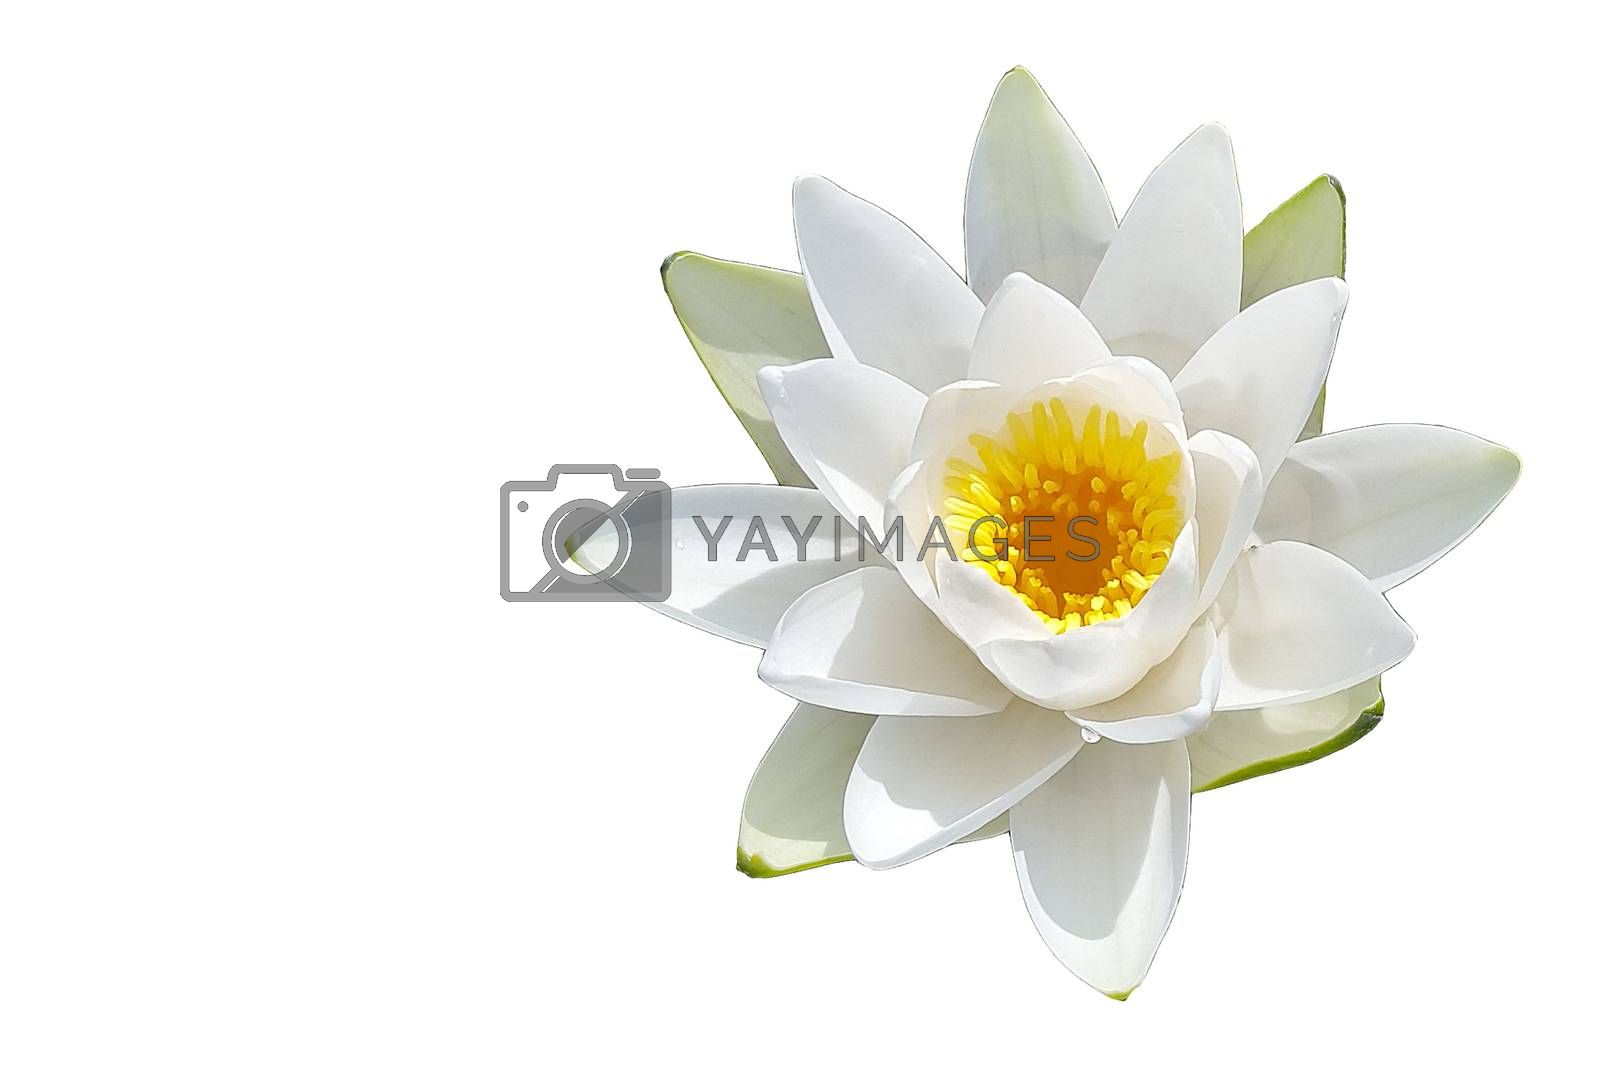 Isolated water lily flower by shoricelu